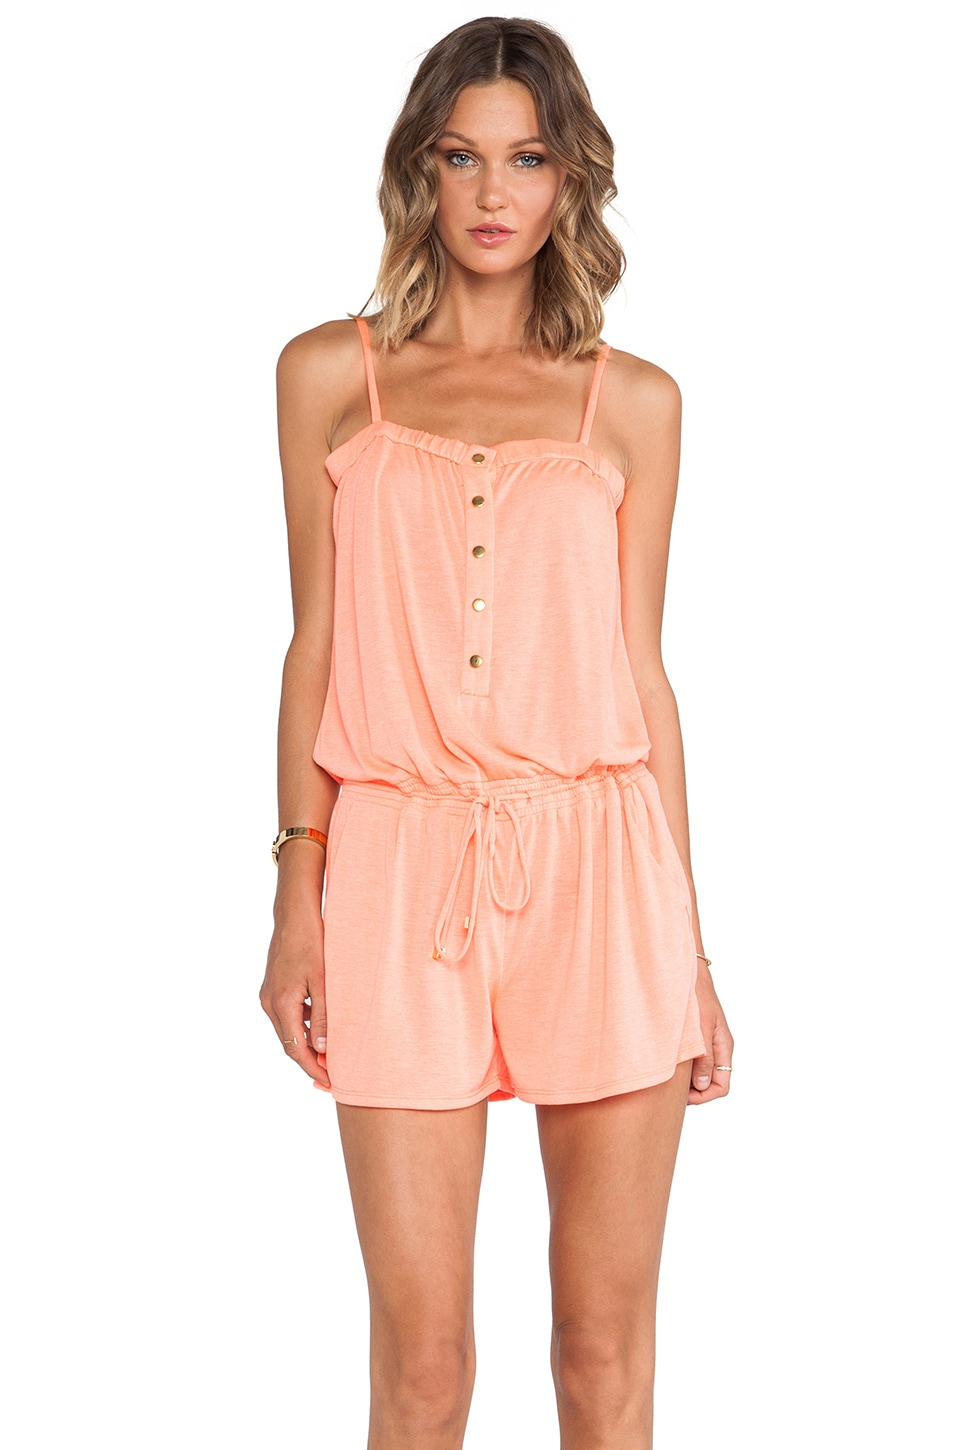 Shoshanna Solid Jersey Romper in Neon Coral